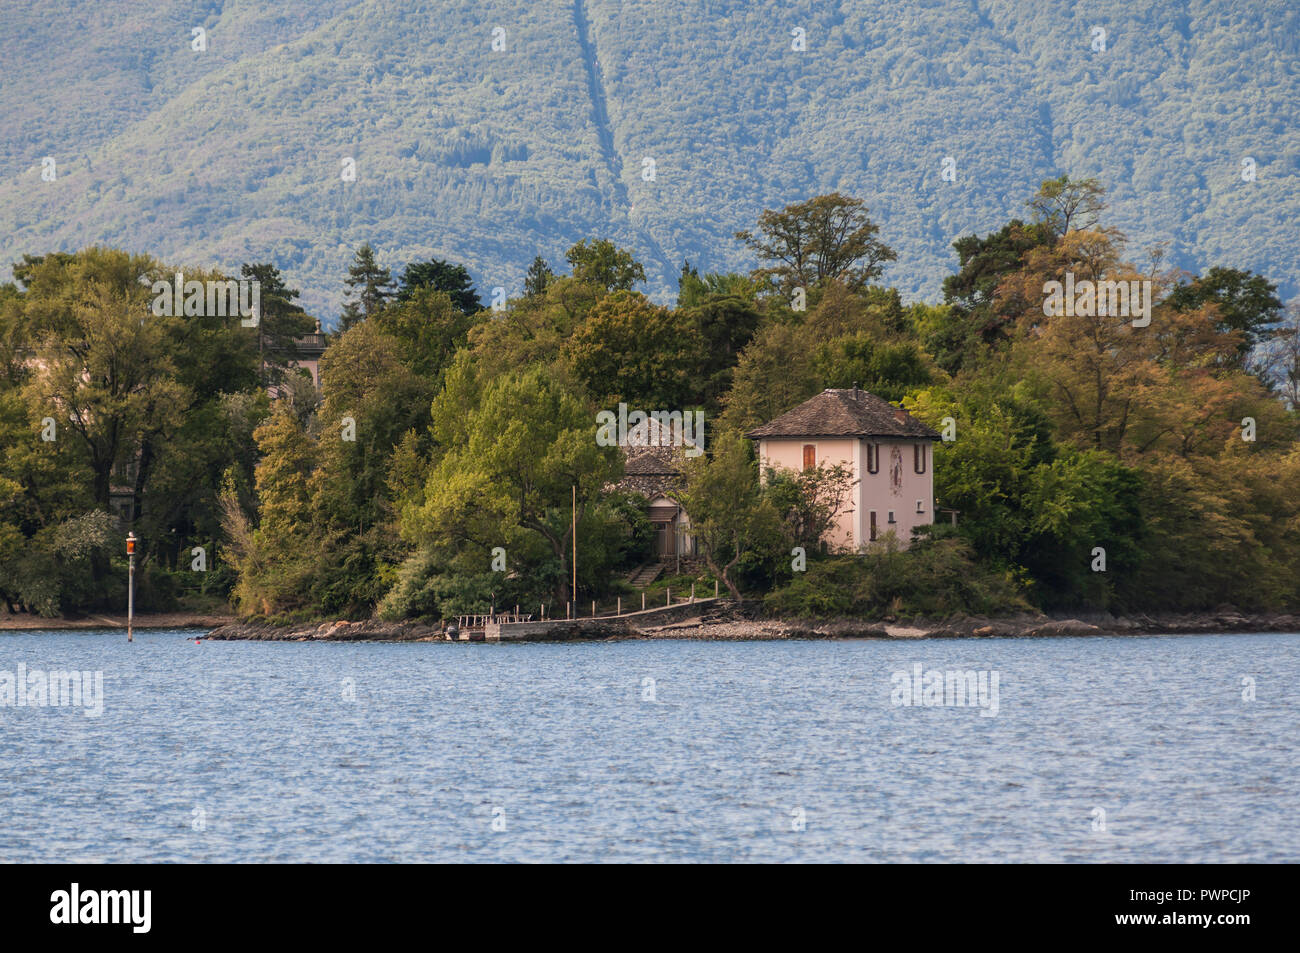 Switzerland, Ticino canton, Brissago islands, Saint Apollinaire island, the smallest and uninhabited one, seen from the boat coming from Ascona Stock Photo